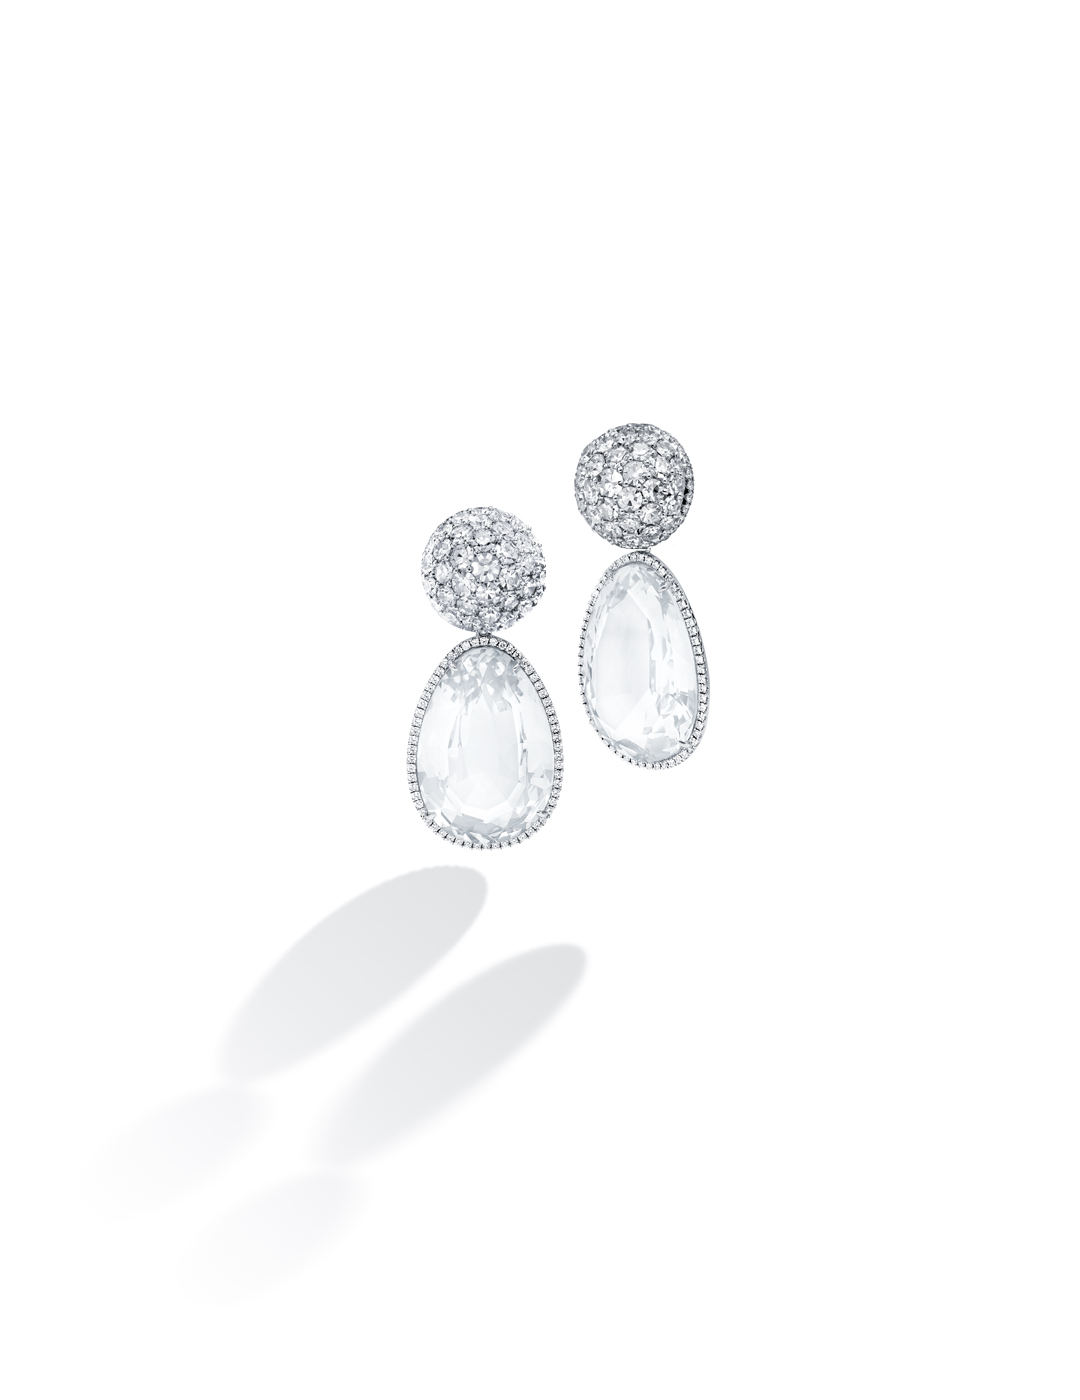 mish_products_earrings_PaveDome-Wht Topaz-Er-1